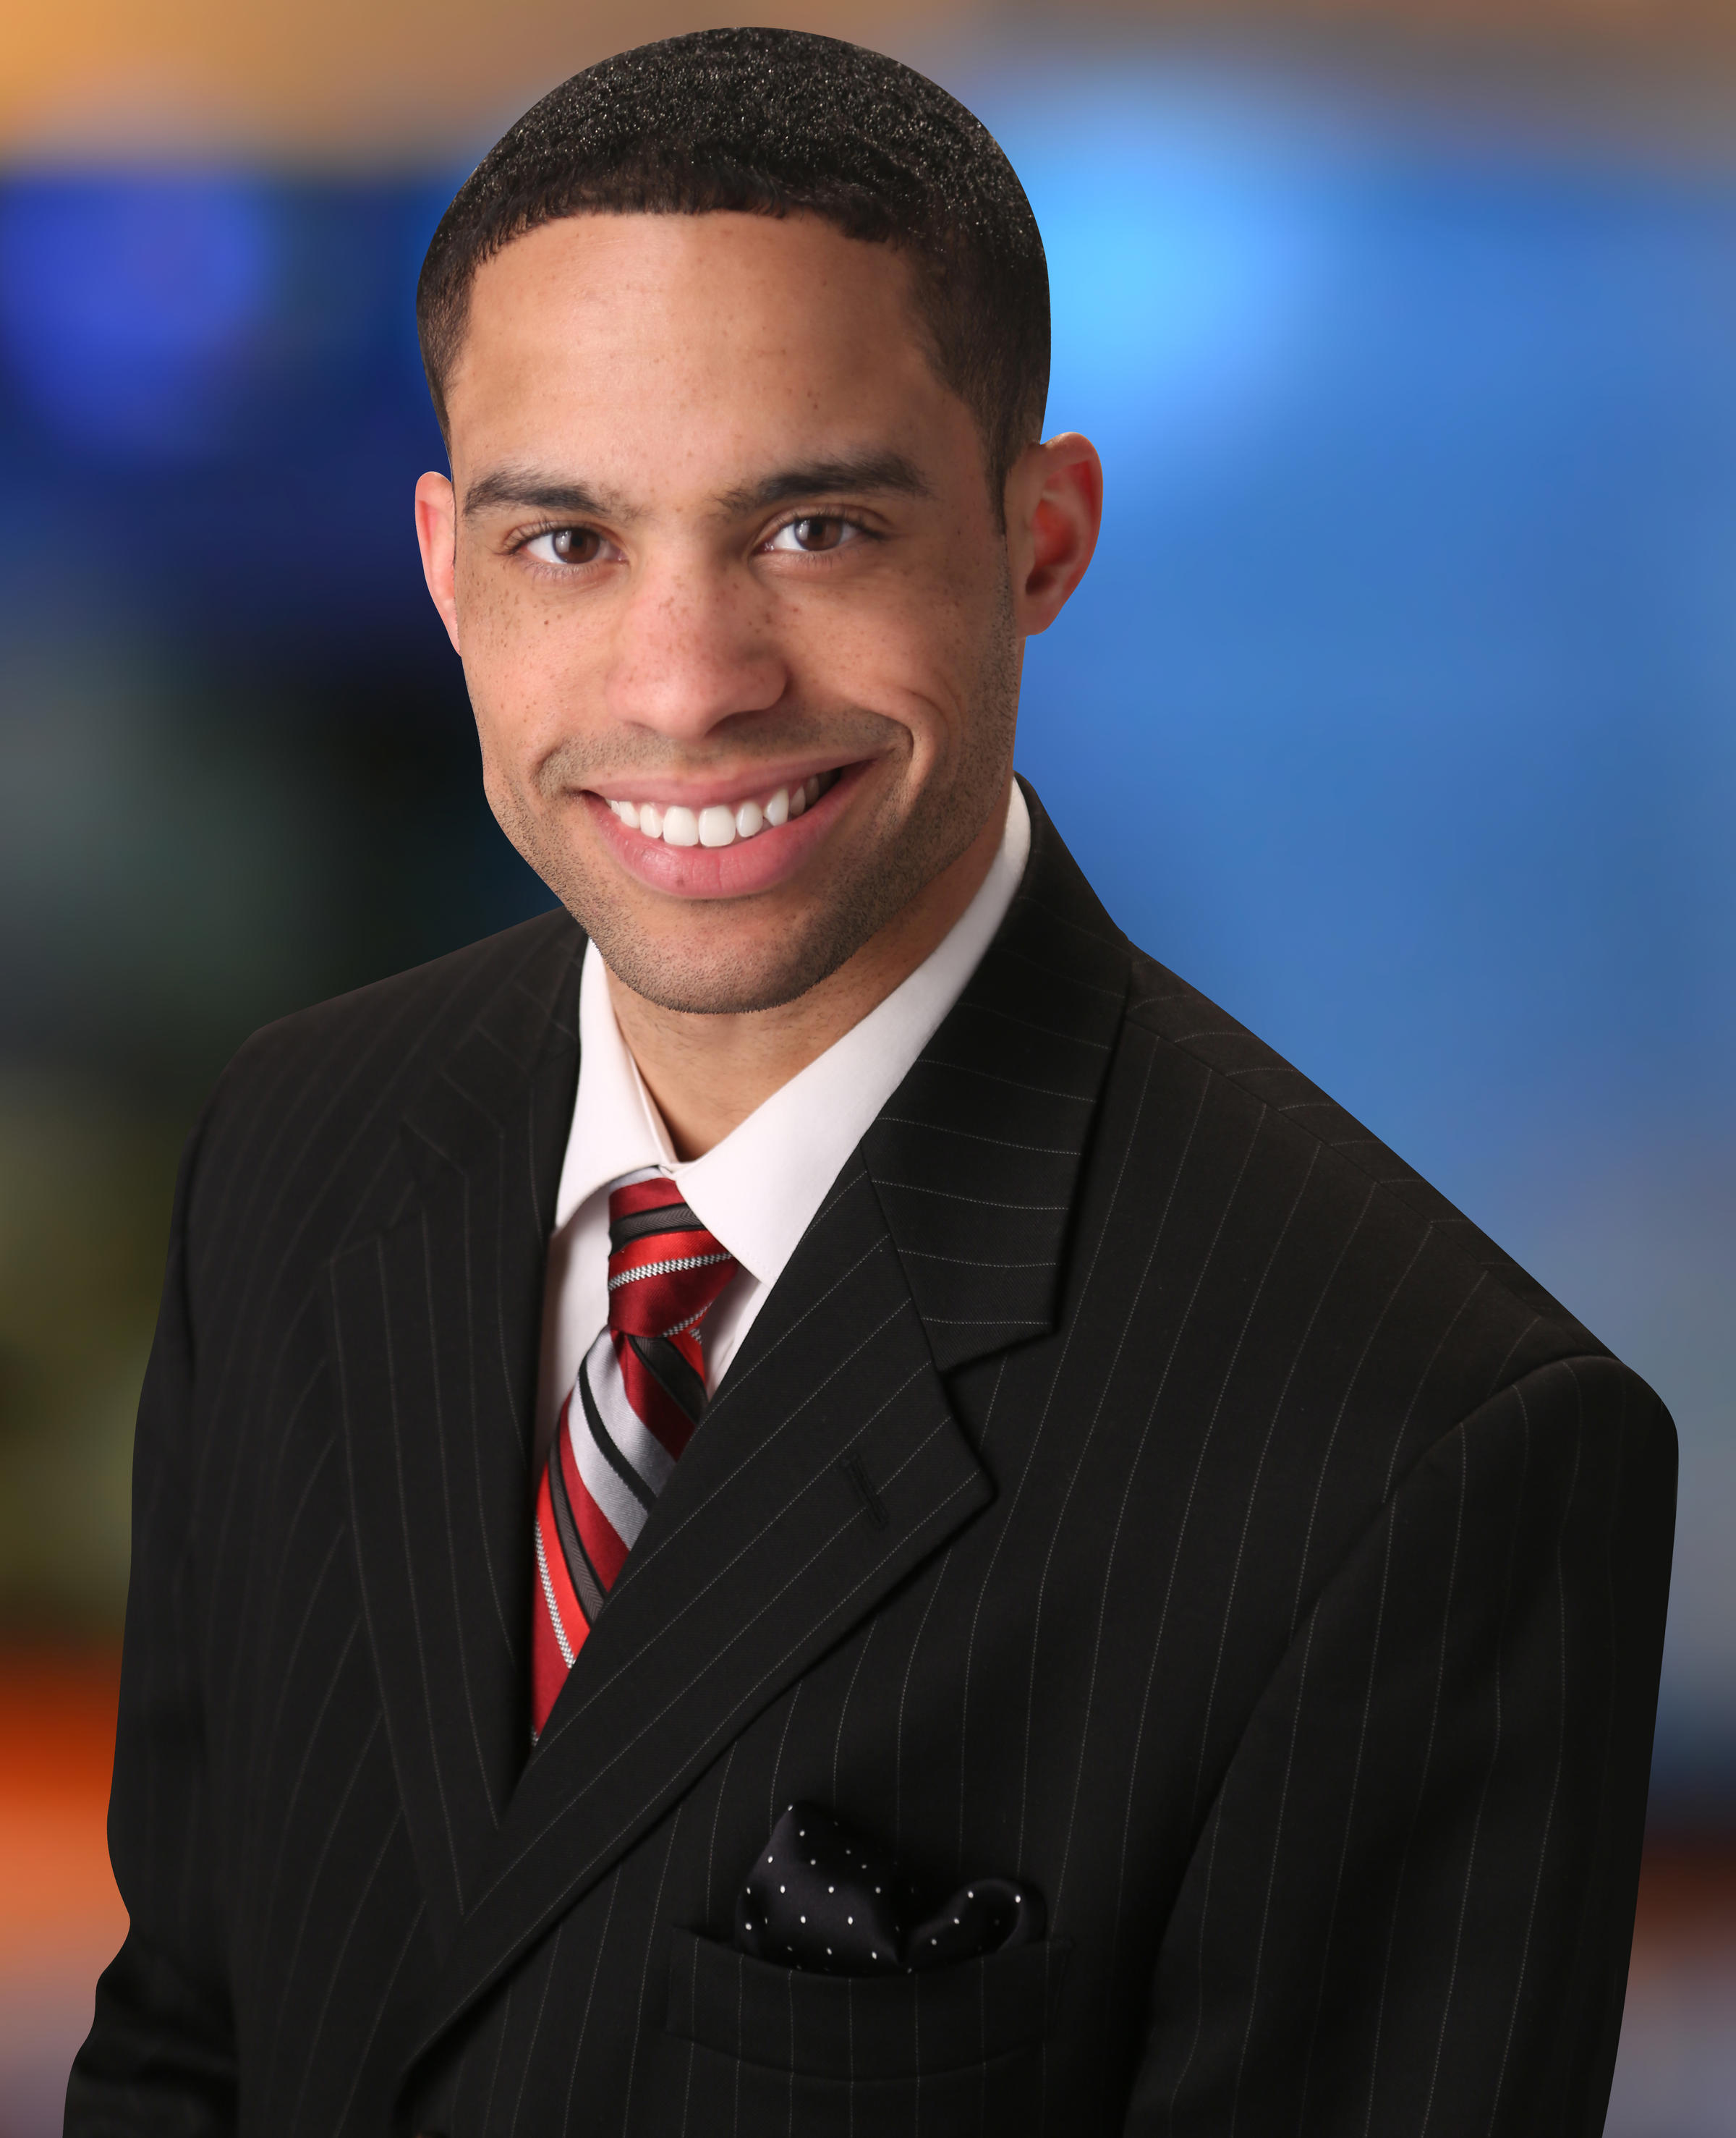 WLWT-TV Hires Morning Anchor, Moves Mark Hayes To Evenings